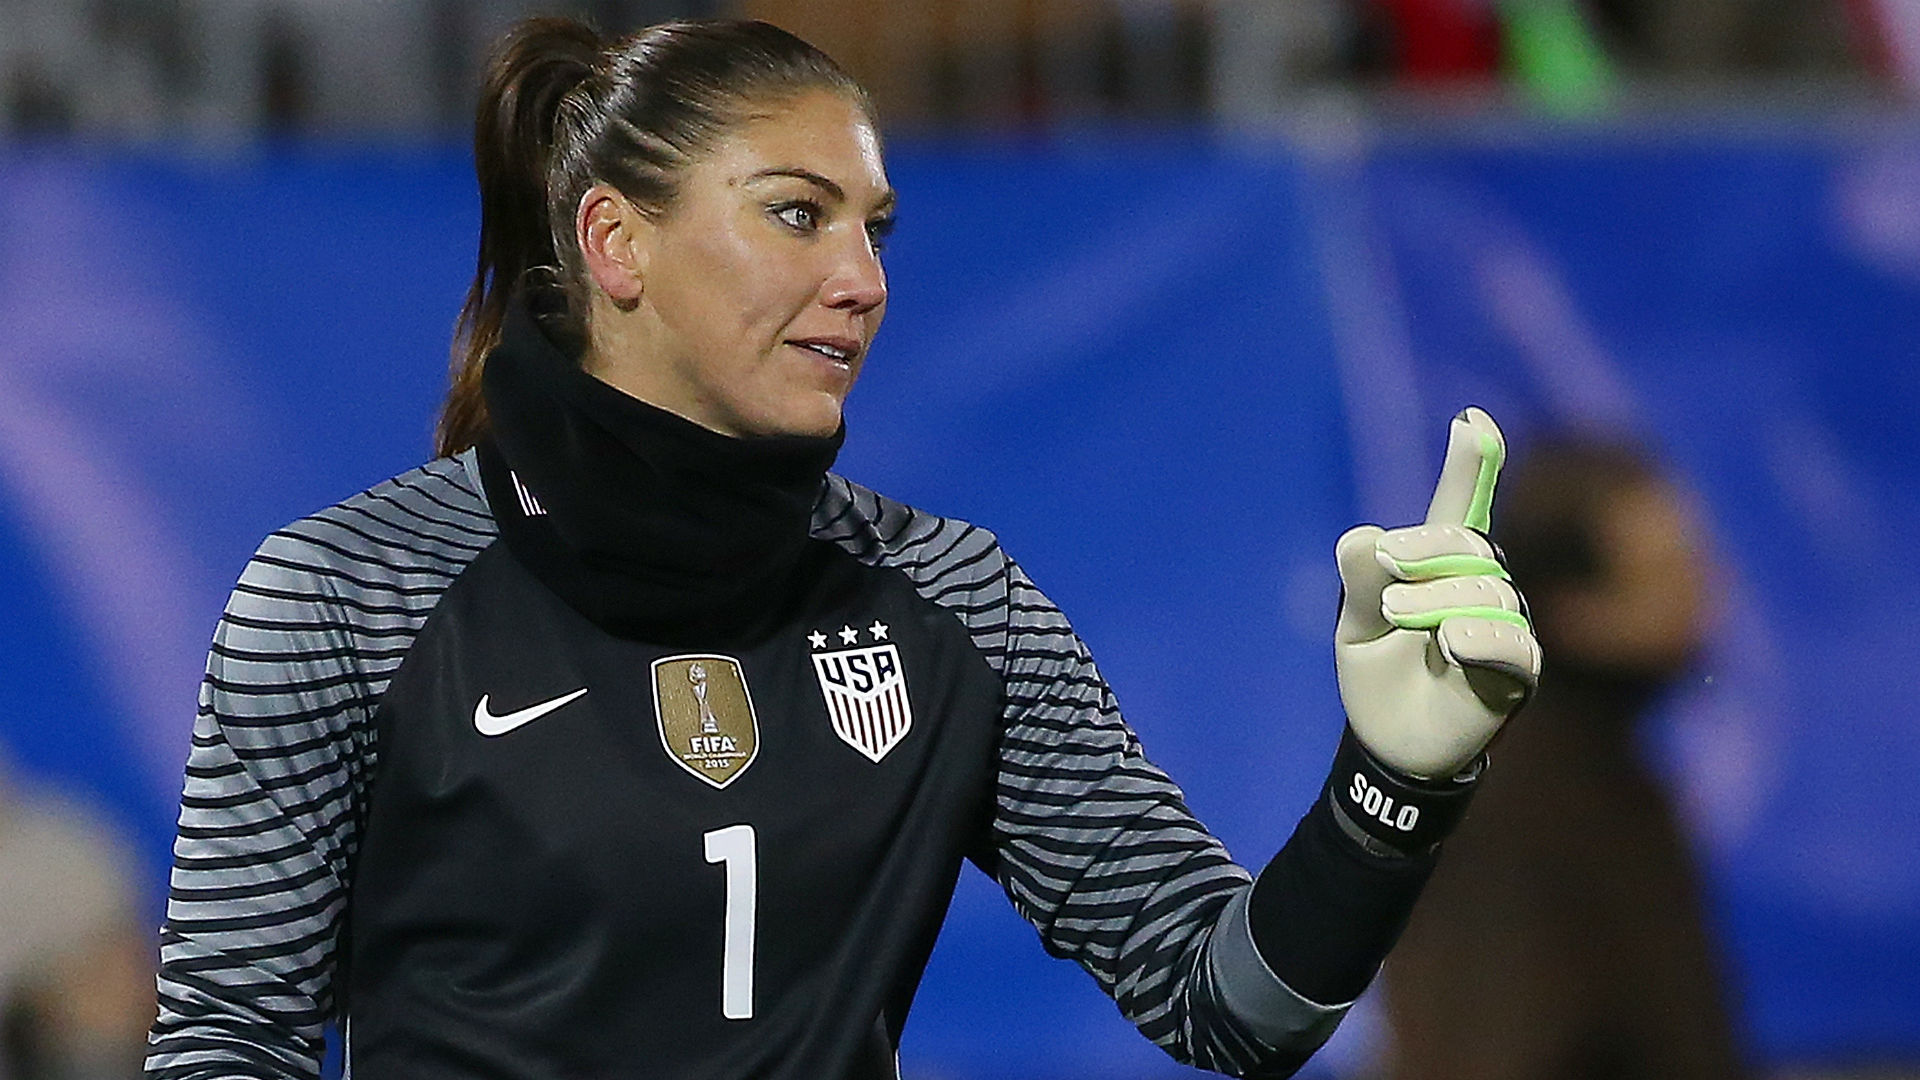 Women's World Cup 2019: USWNT went 'overboard' celebrating vs. Thailand, says Hope Solo